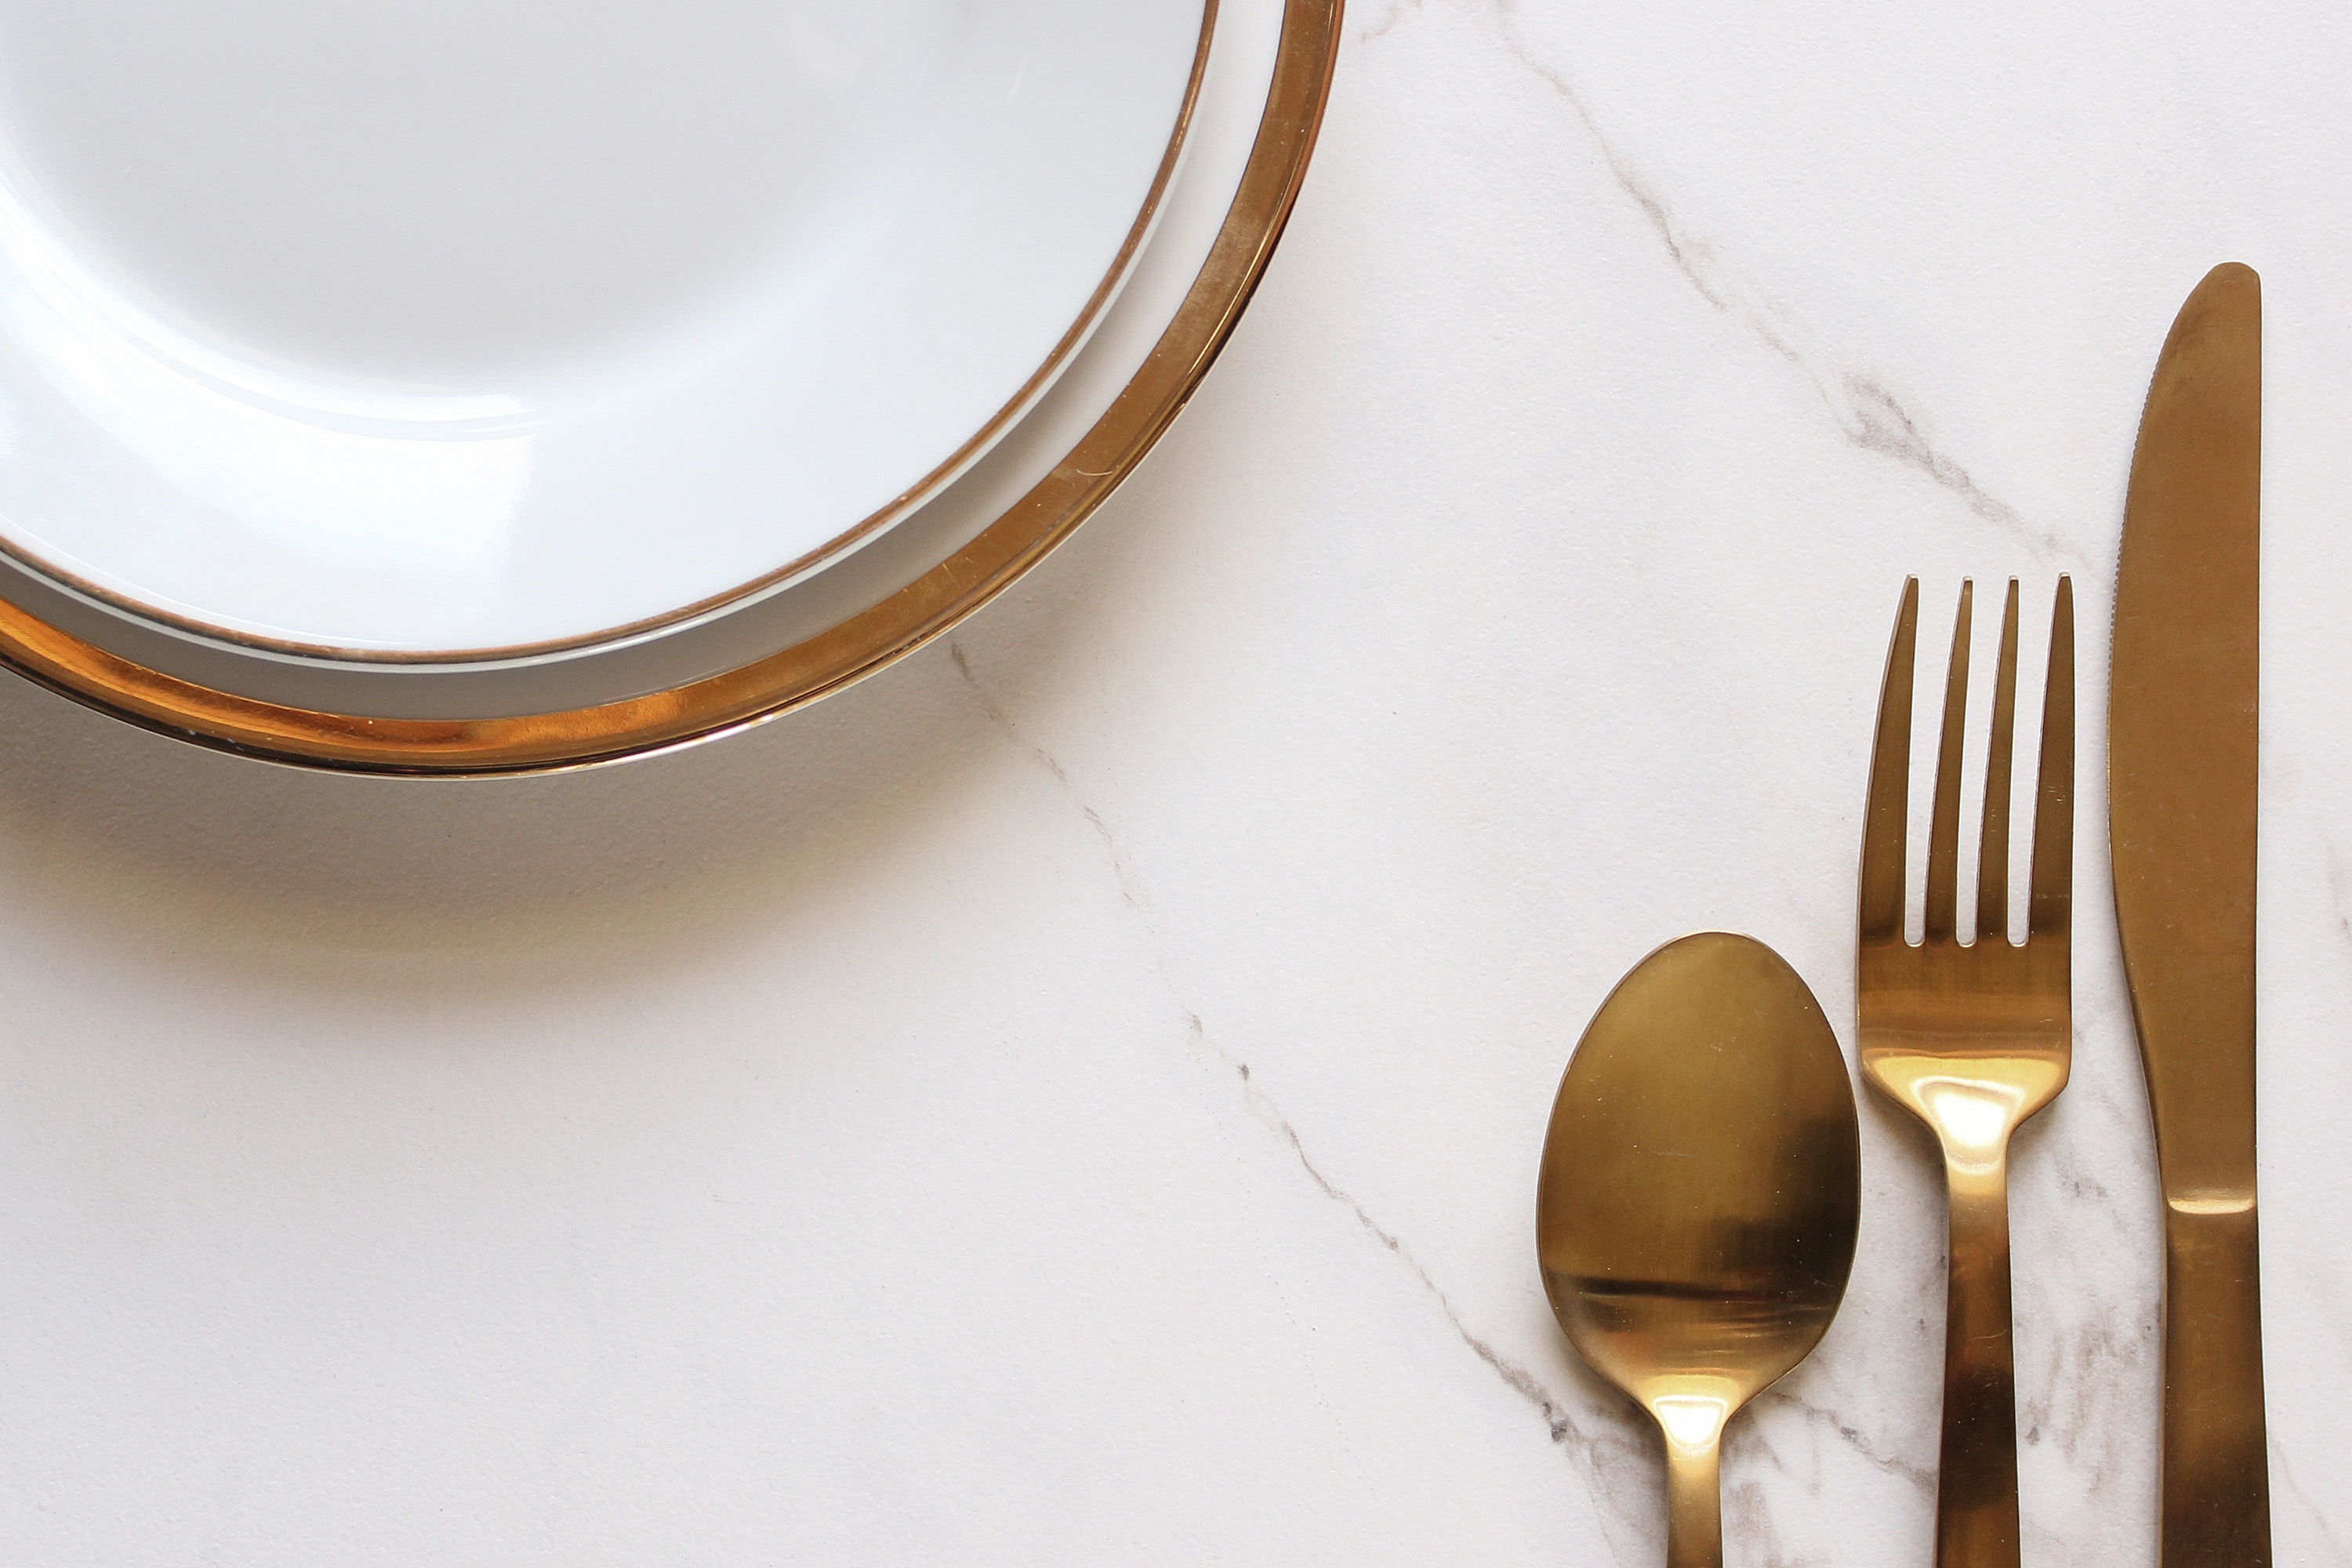 PVD coated tableware